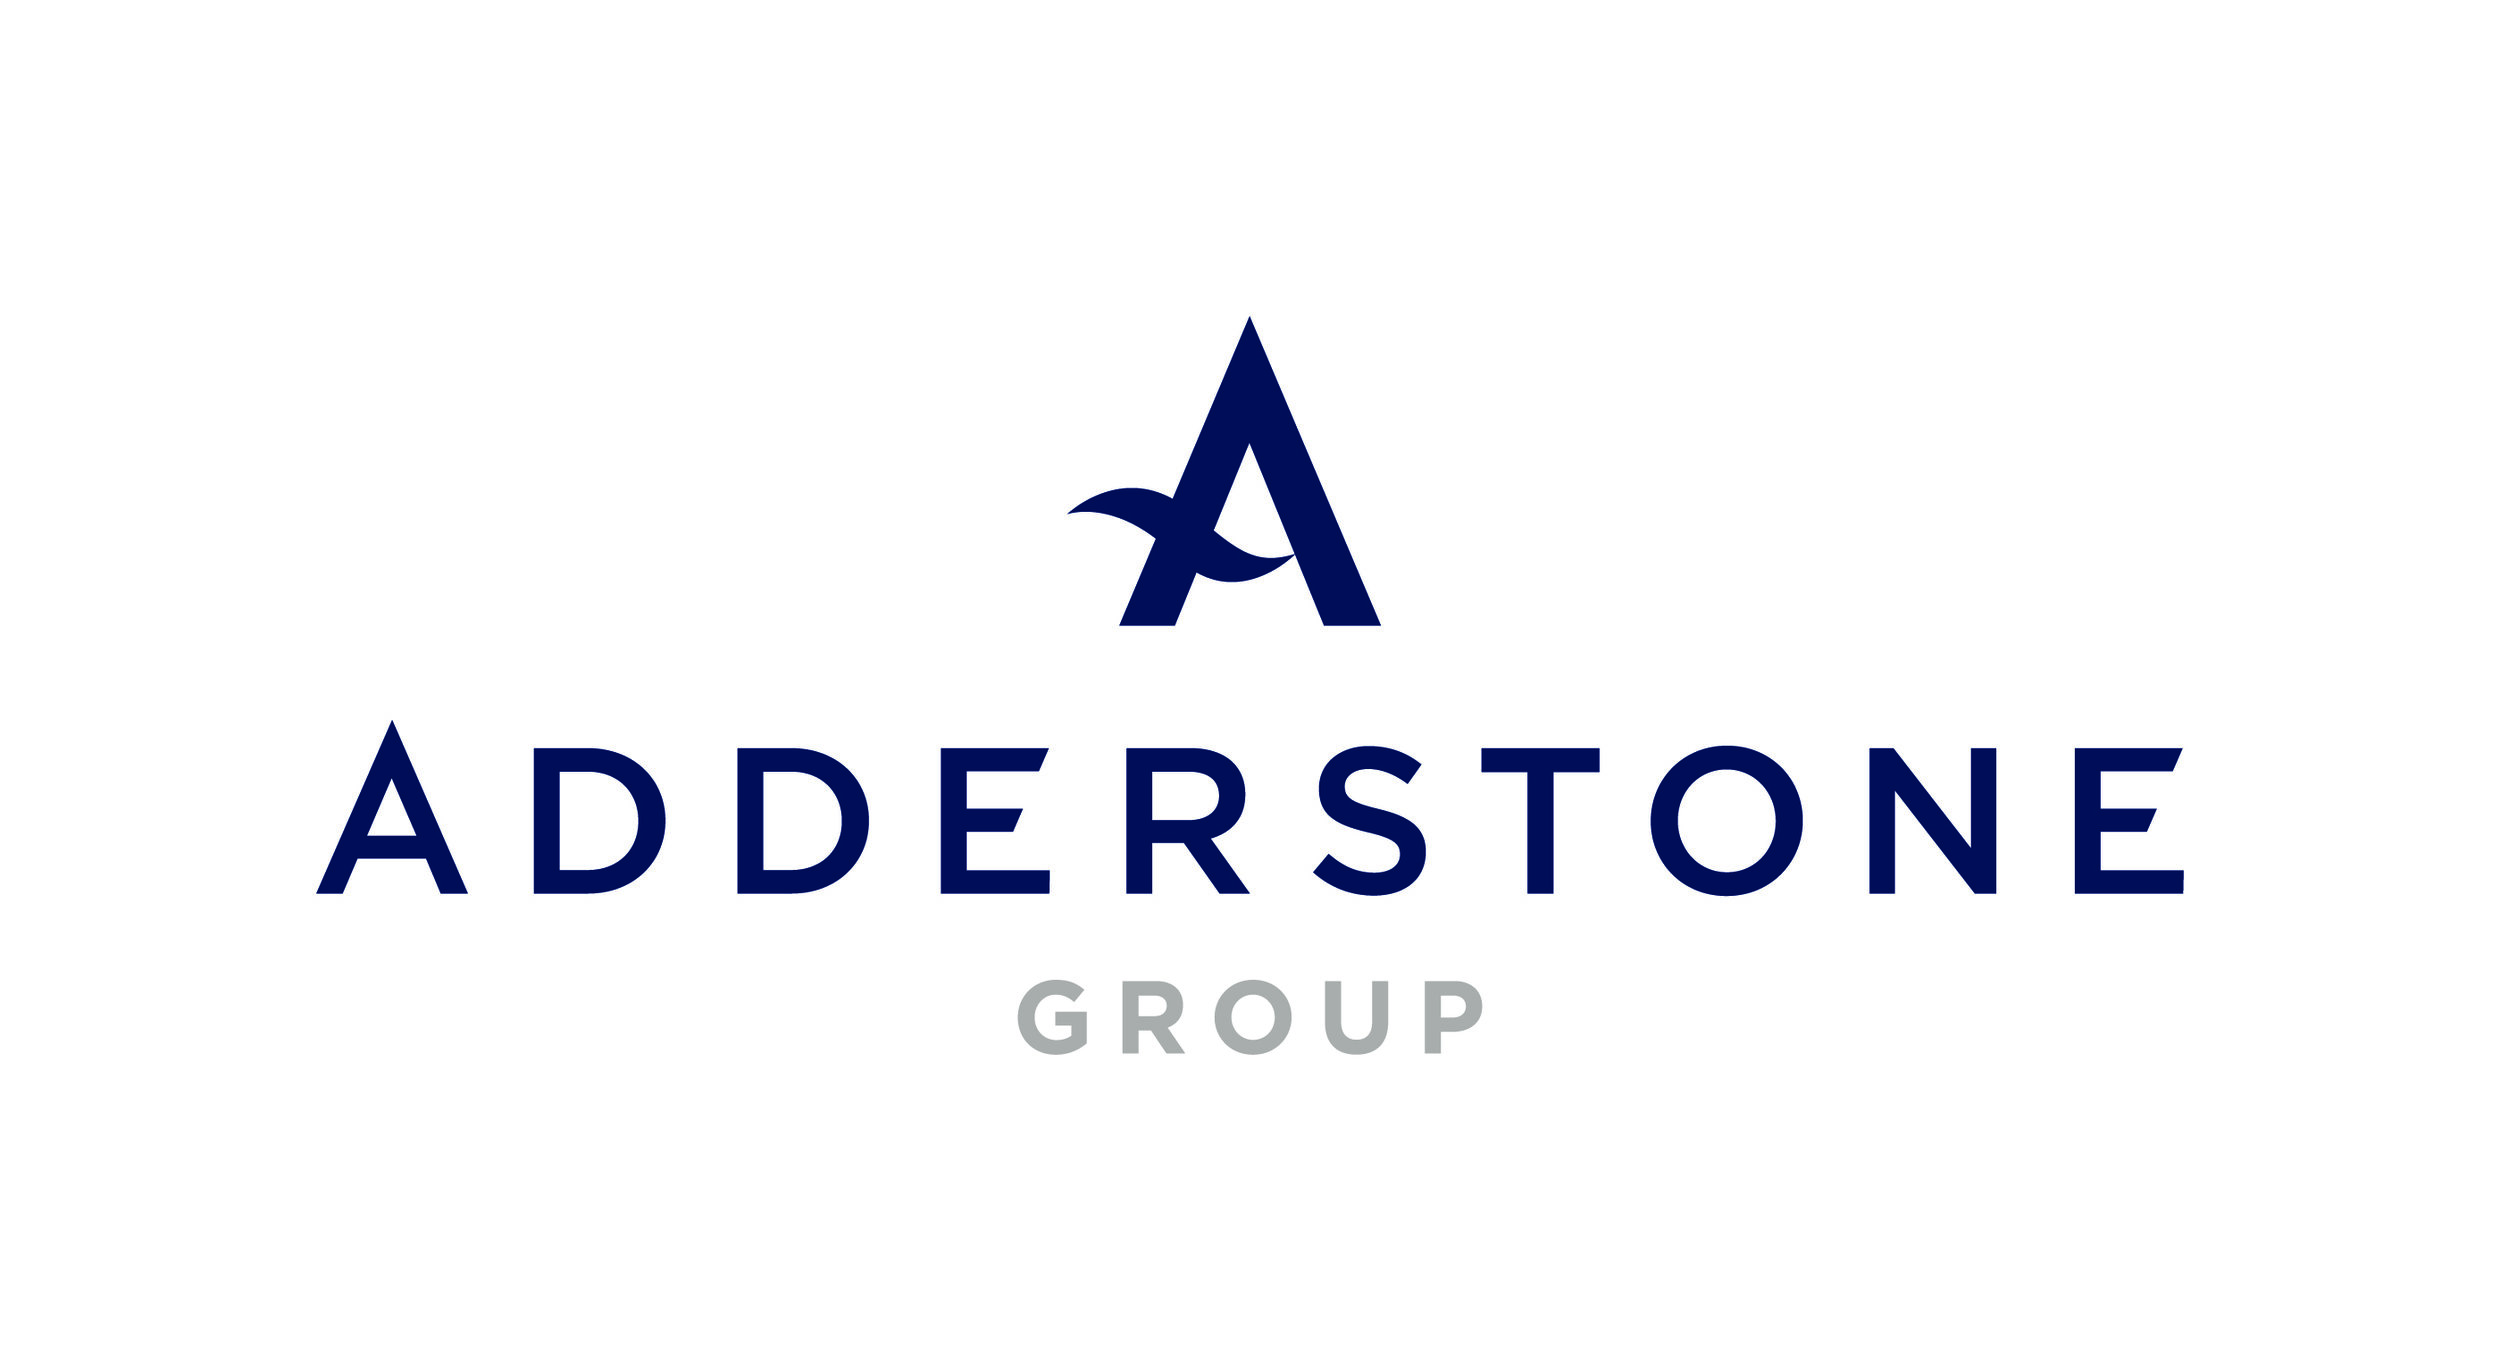 Adderstone Group-STANDARD-CMYK.jpg